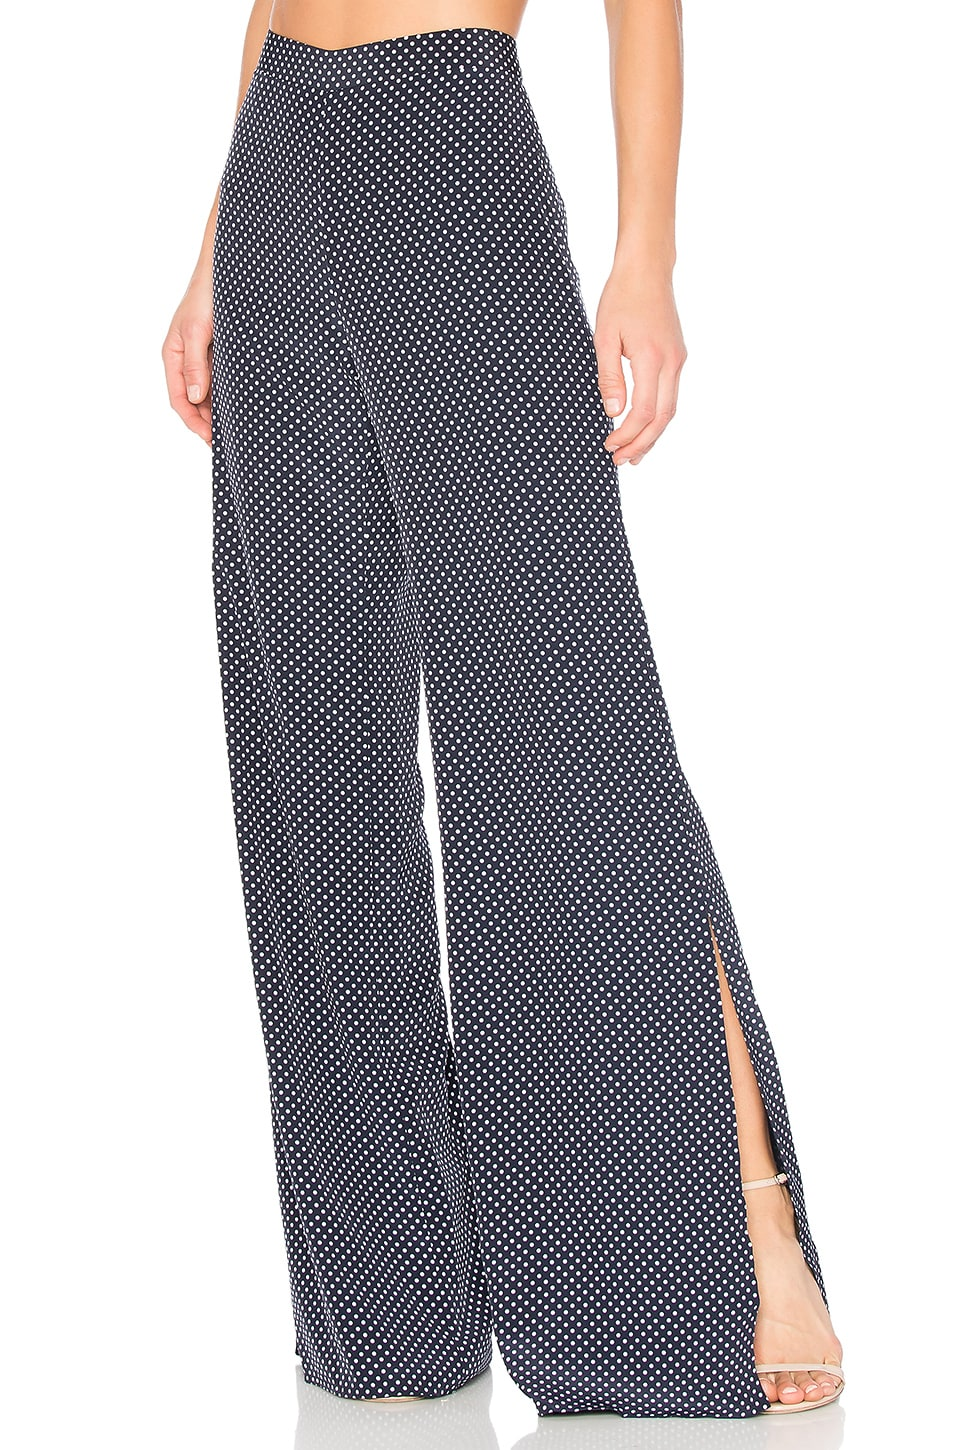 Alexis Lolette Pant in Navy Dot